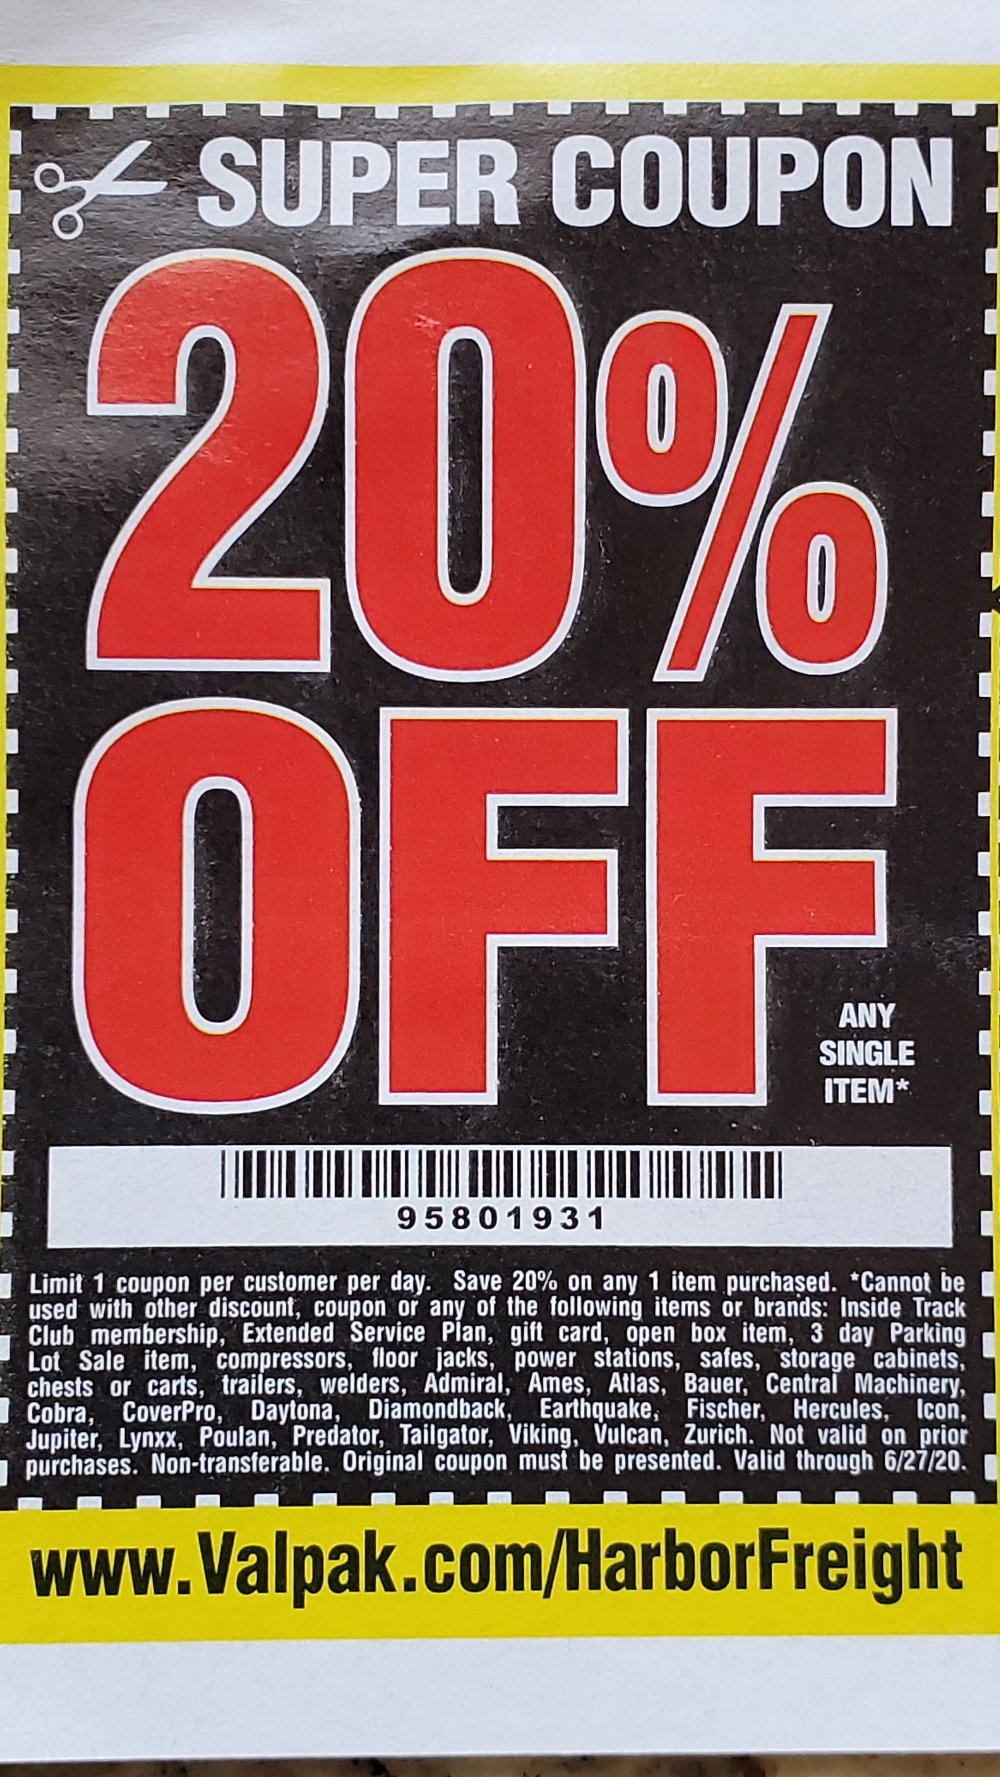 Harbor Freight Coupon, HF Coupons - 20%off Any One Item